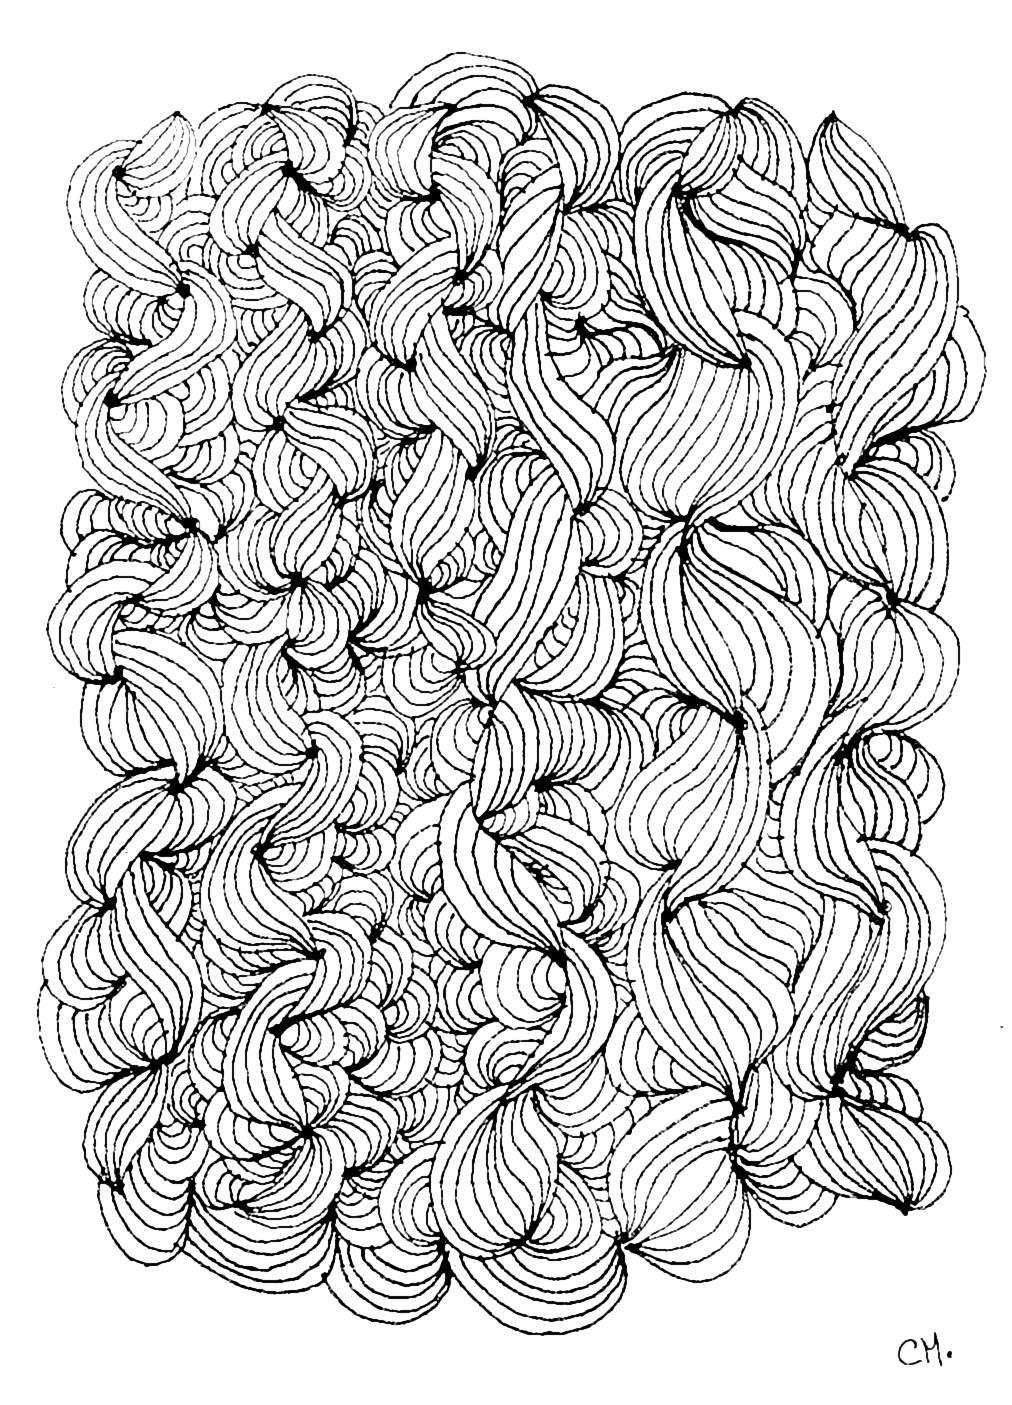 be free exclusive zentangle coloring page see the original work from the - Zentangle Coloring Pages